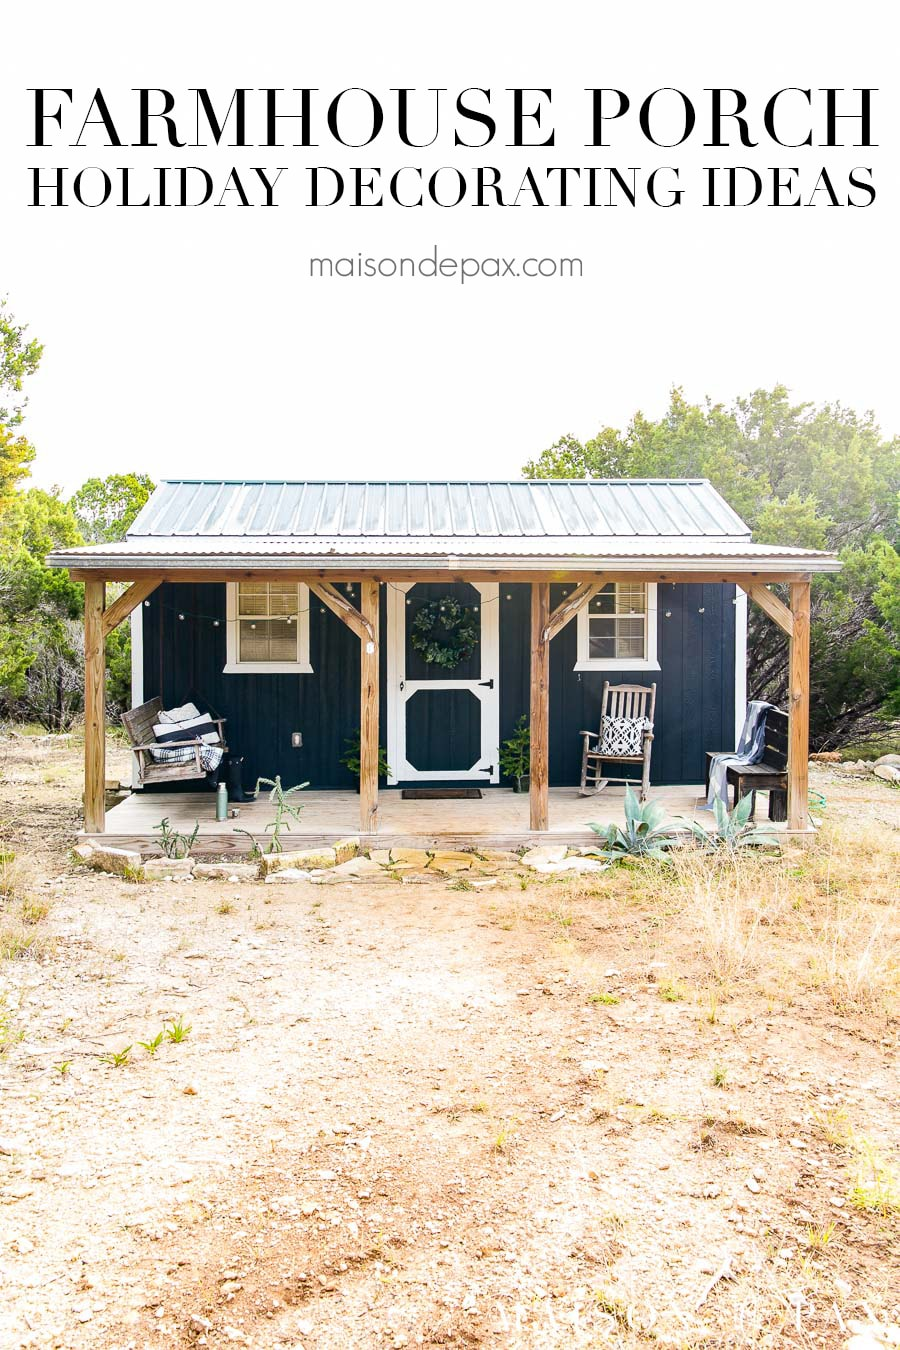 black and white tiny house out in the country with a charming porch